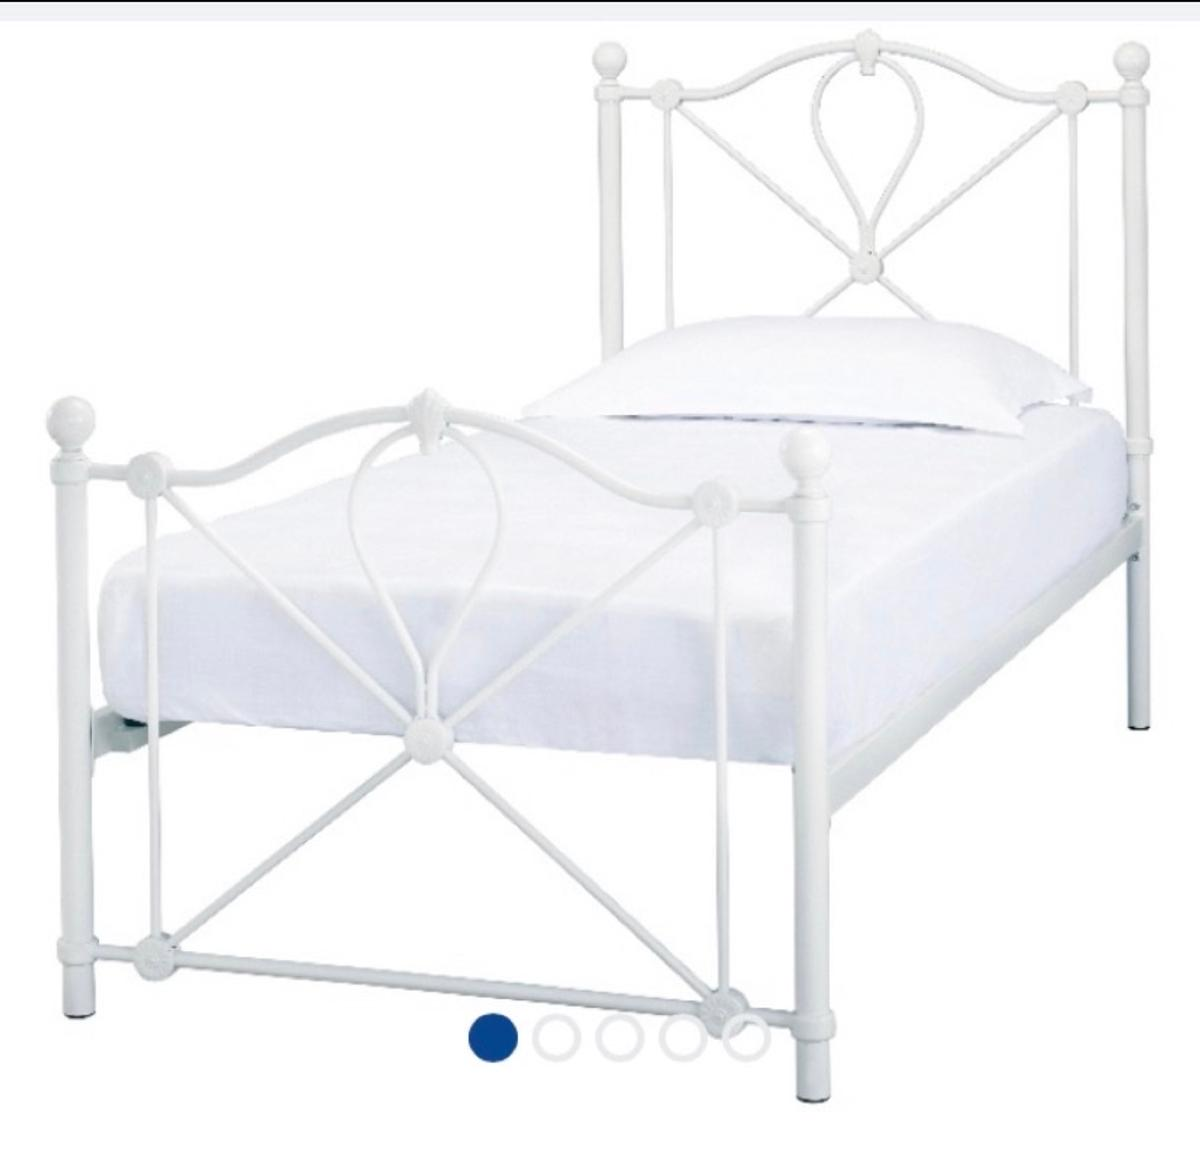 Shabby chic 3ft single bed frame Brand new boxed Free delivery within 10 miles  Mattress can be added for extra